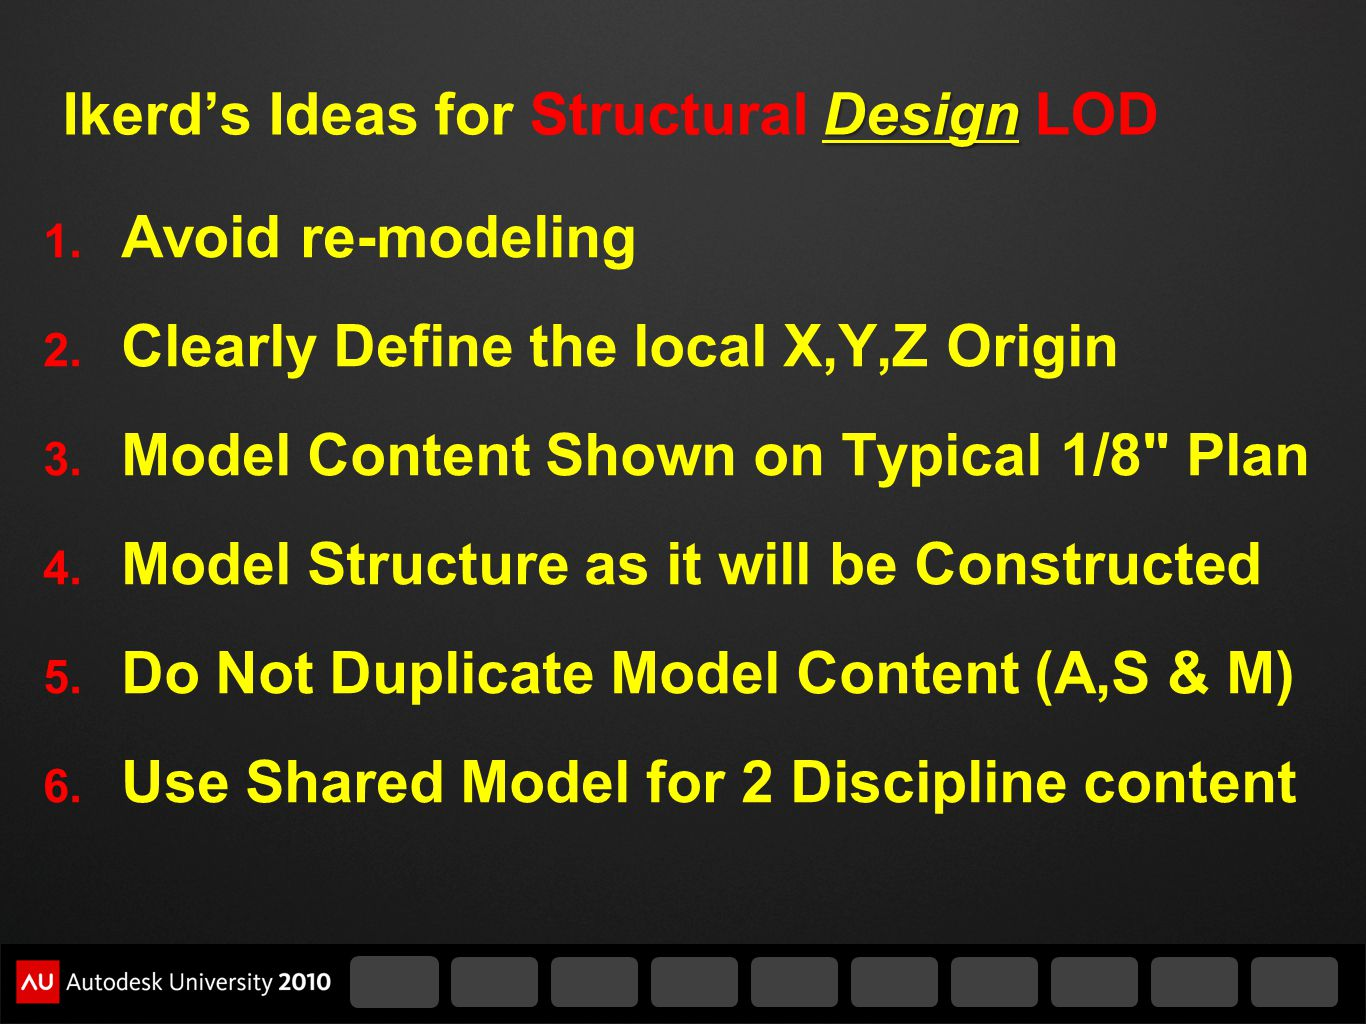 Ikerd's Ideas for Structural Design LOD